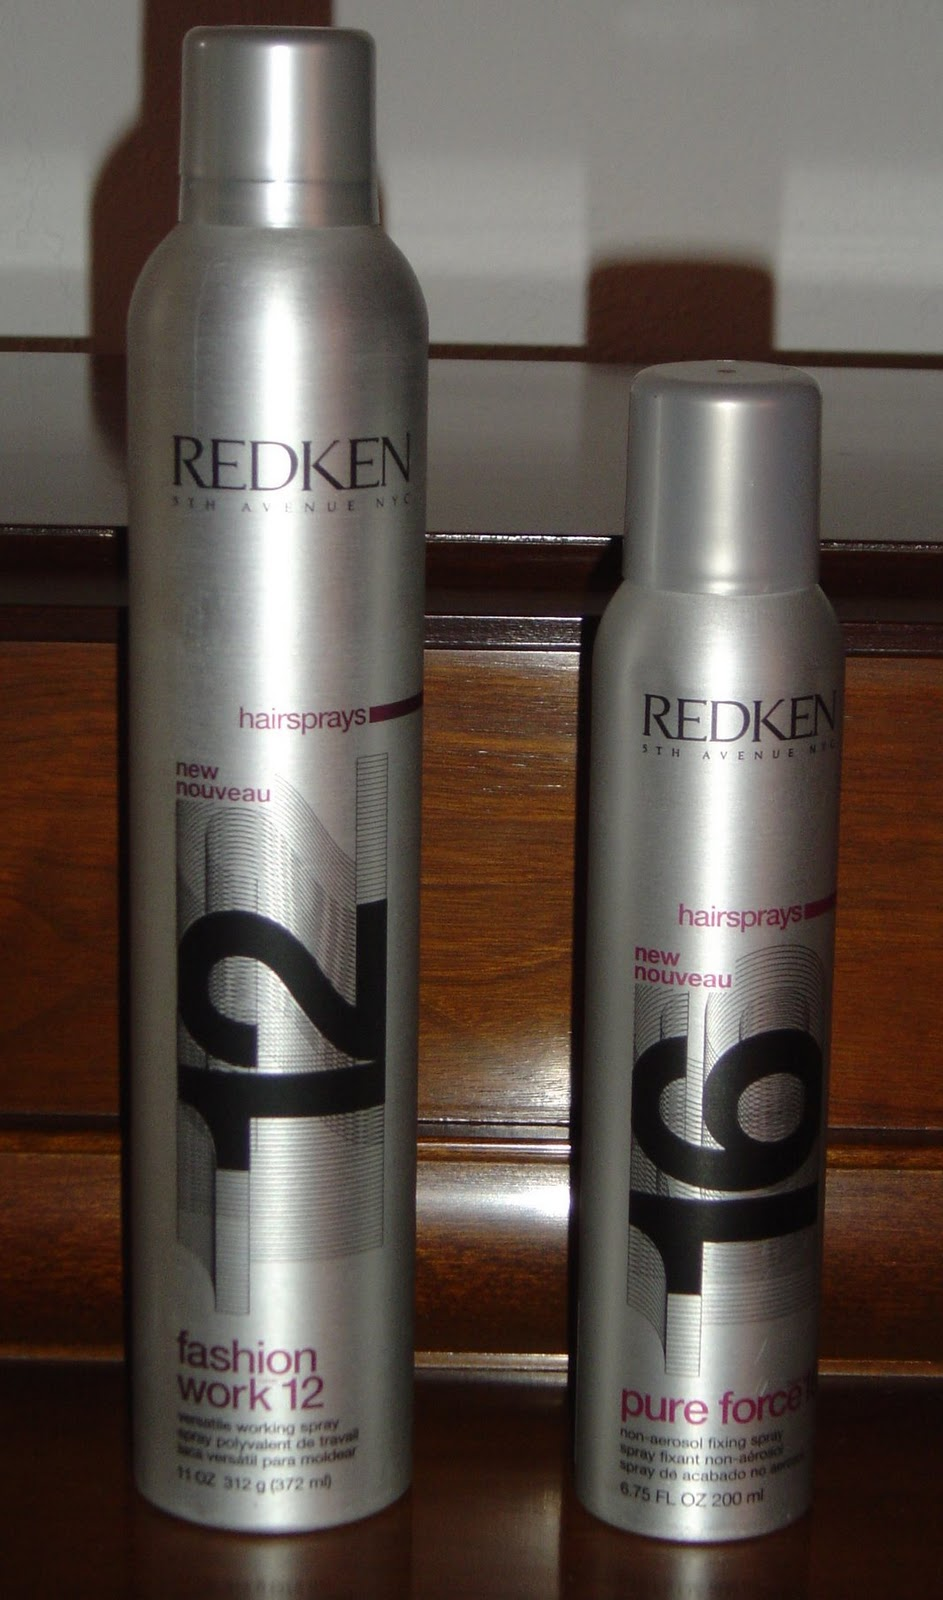 Redken Fashion Work 12 and Pure Force 16 Hairsprays